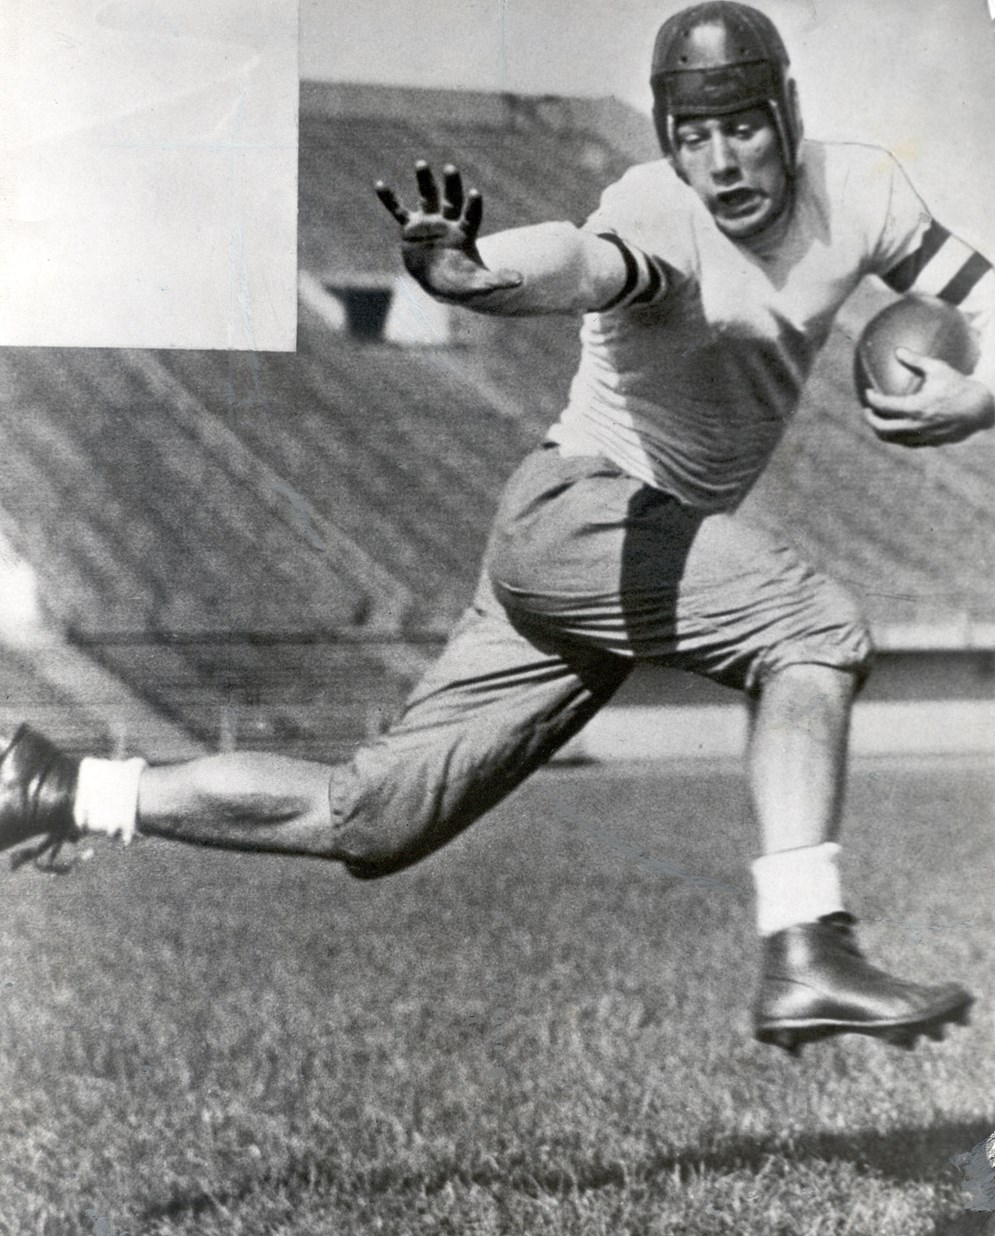 University of Chicago star Jay Berwanger won the first Heisman Trophy and was the first overall pick in the 1936 draft, but he chose a job selling foam rubber over playing in the NFL; he would later launch a successful manufacturing business. (Pro Football Hall of Fame)